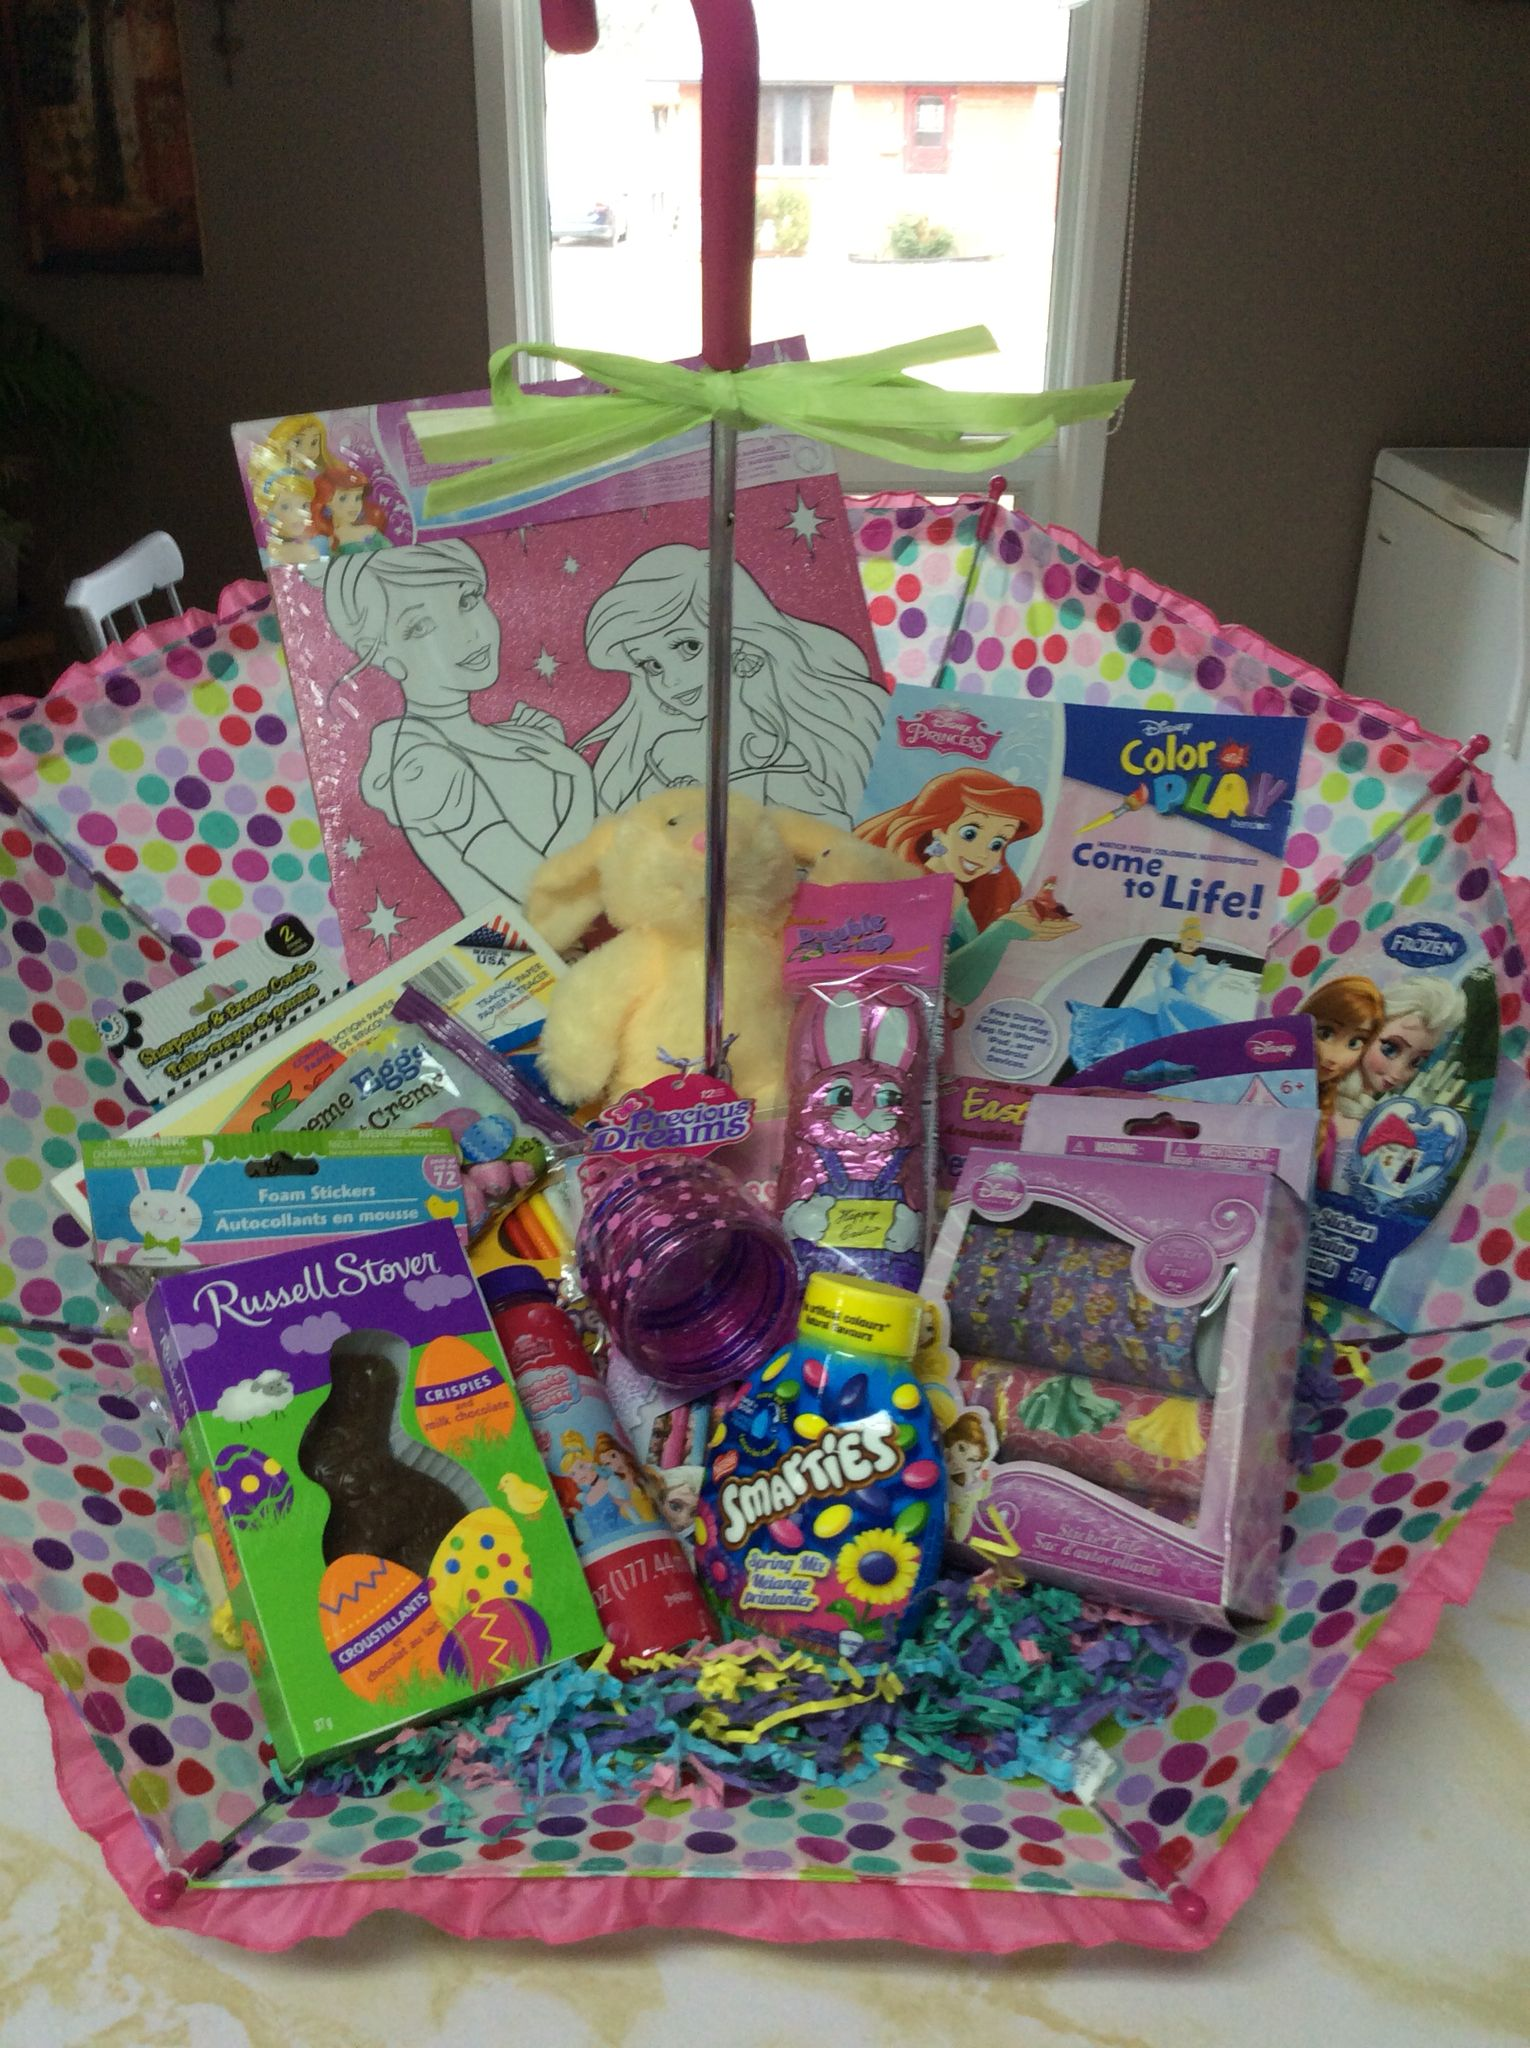 Umbrella filled with gifts and Easter treats for a little girl